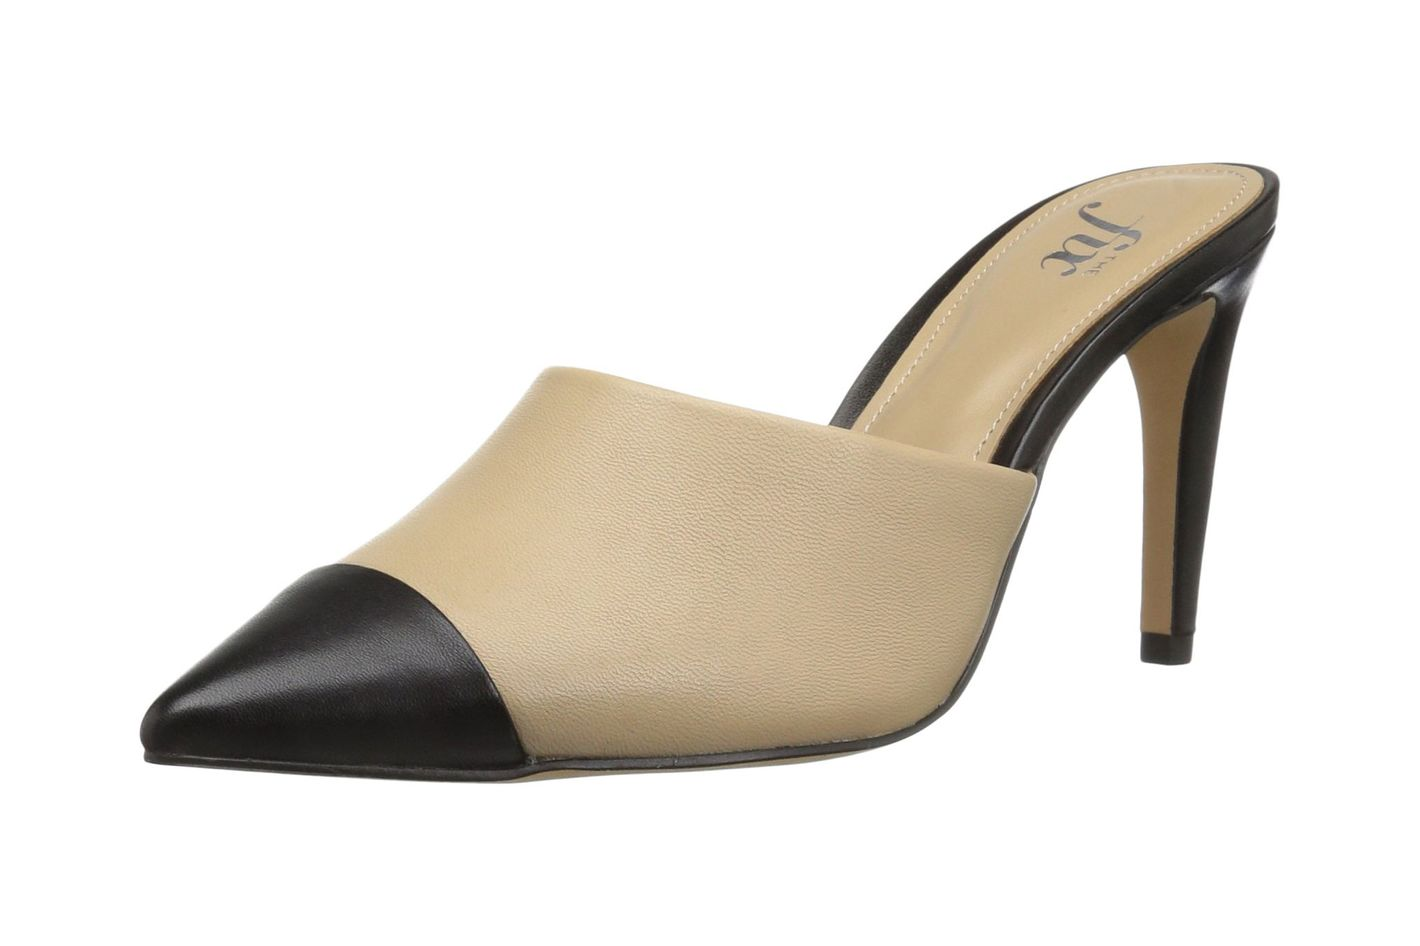 The Fix Women's Jenkins Choked-up Pointed Toe Mule